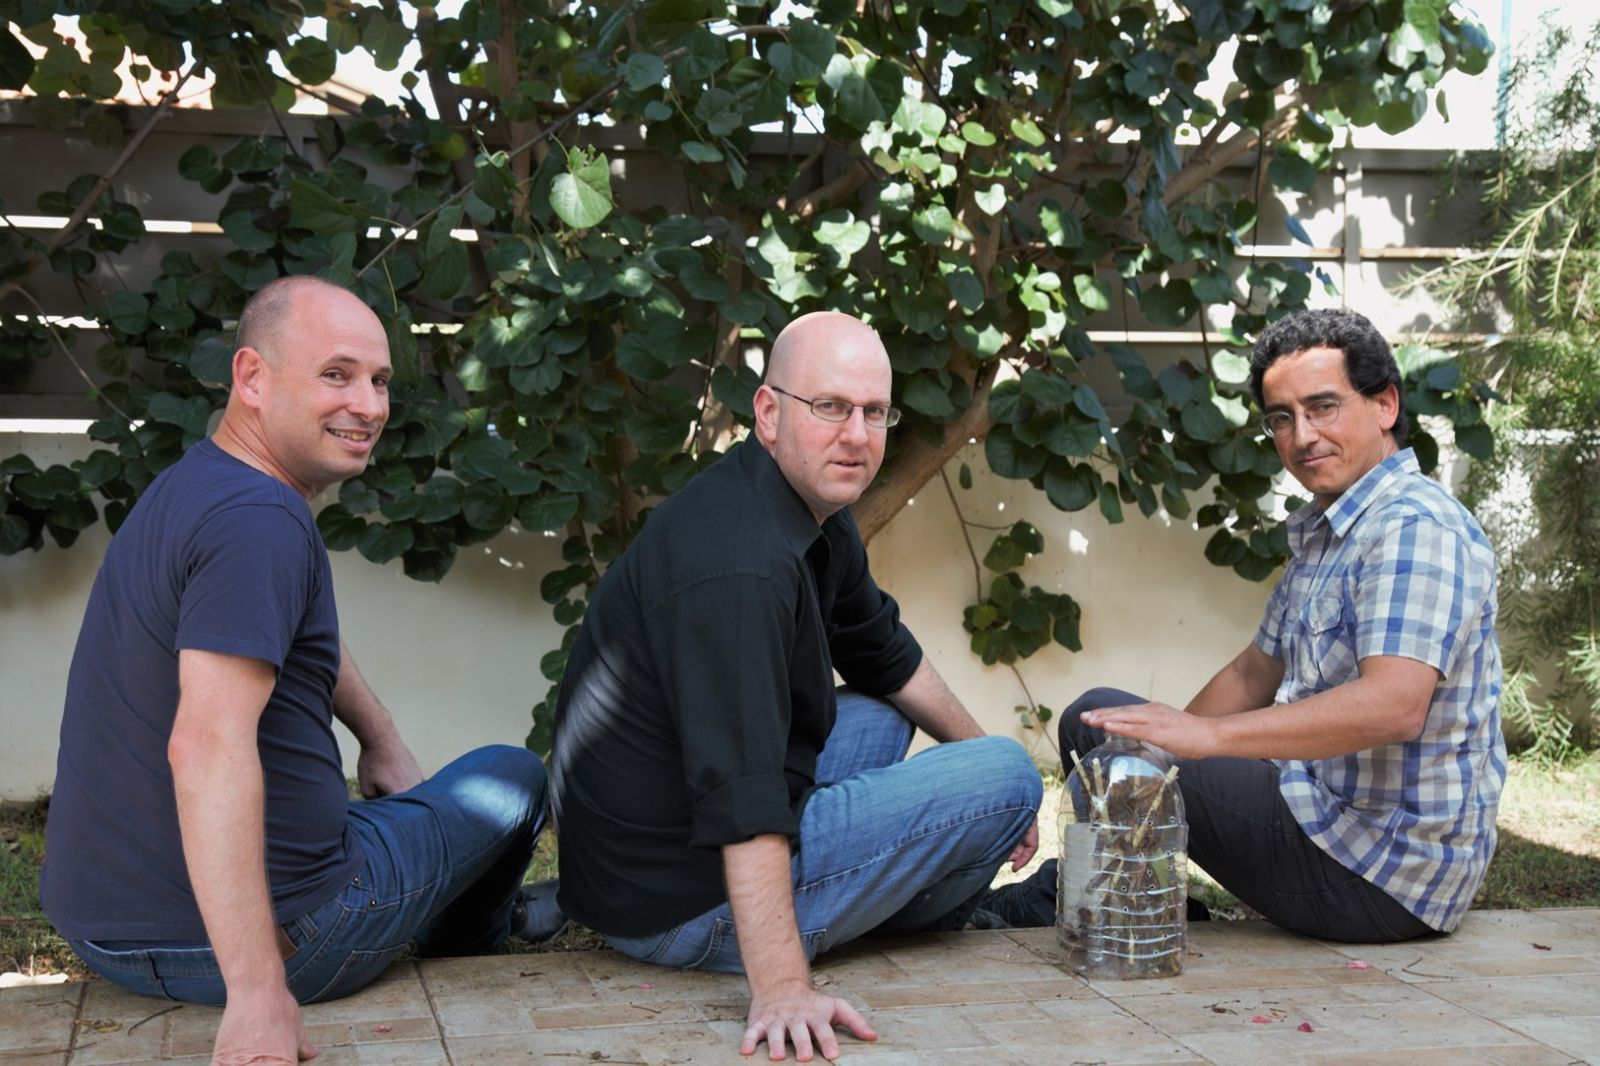 Steak TzarTzar cofounders Dror Tamir, Ben Friedman and Chanan Aviv. Photo by Naor Friedman